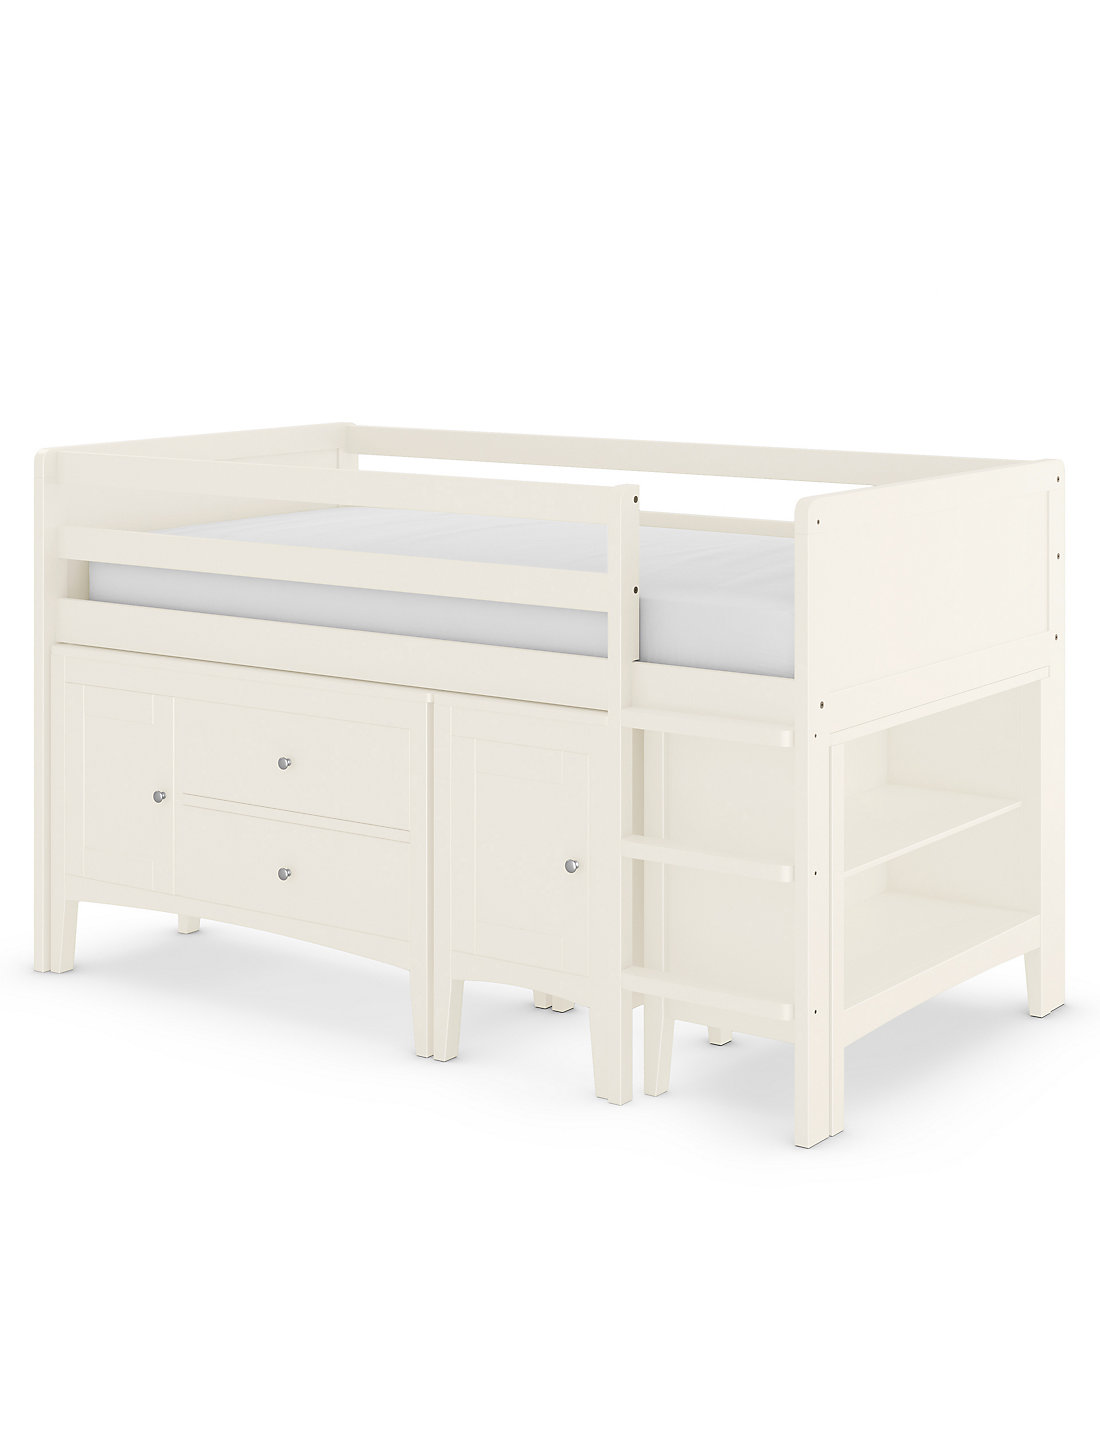 Ms Bedroom Furniture Childrens Bedroom Furniture Bunk Beds Storage Sets Ms